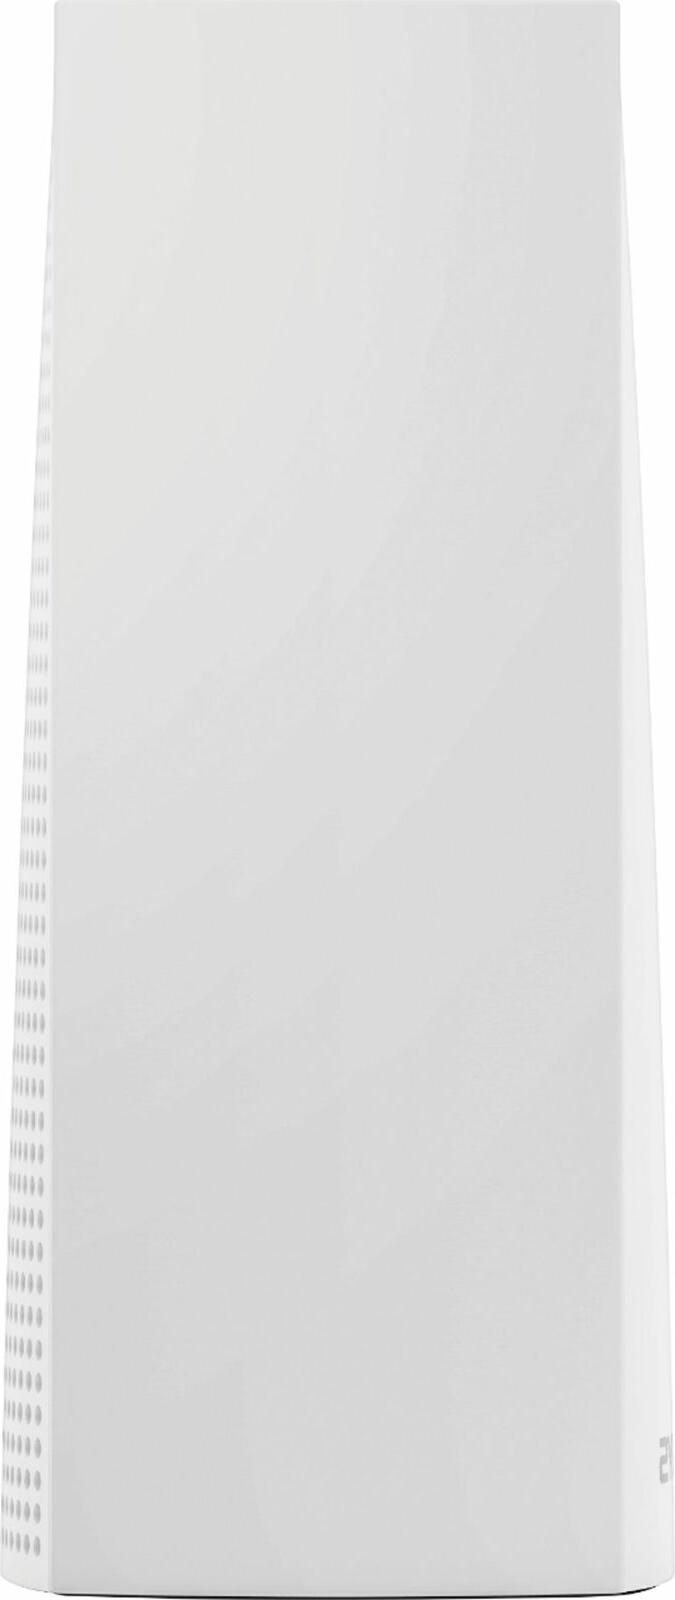 Linksys Velop Whole Home Mesh Wi-Fi Router System